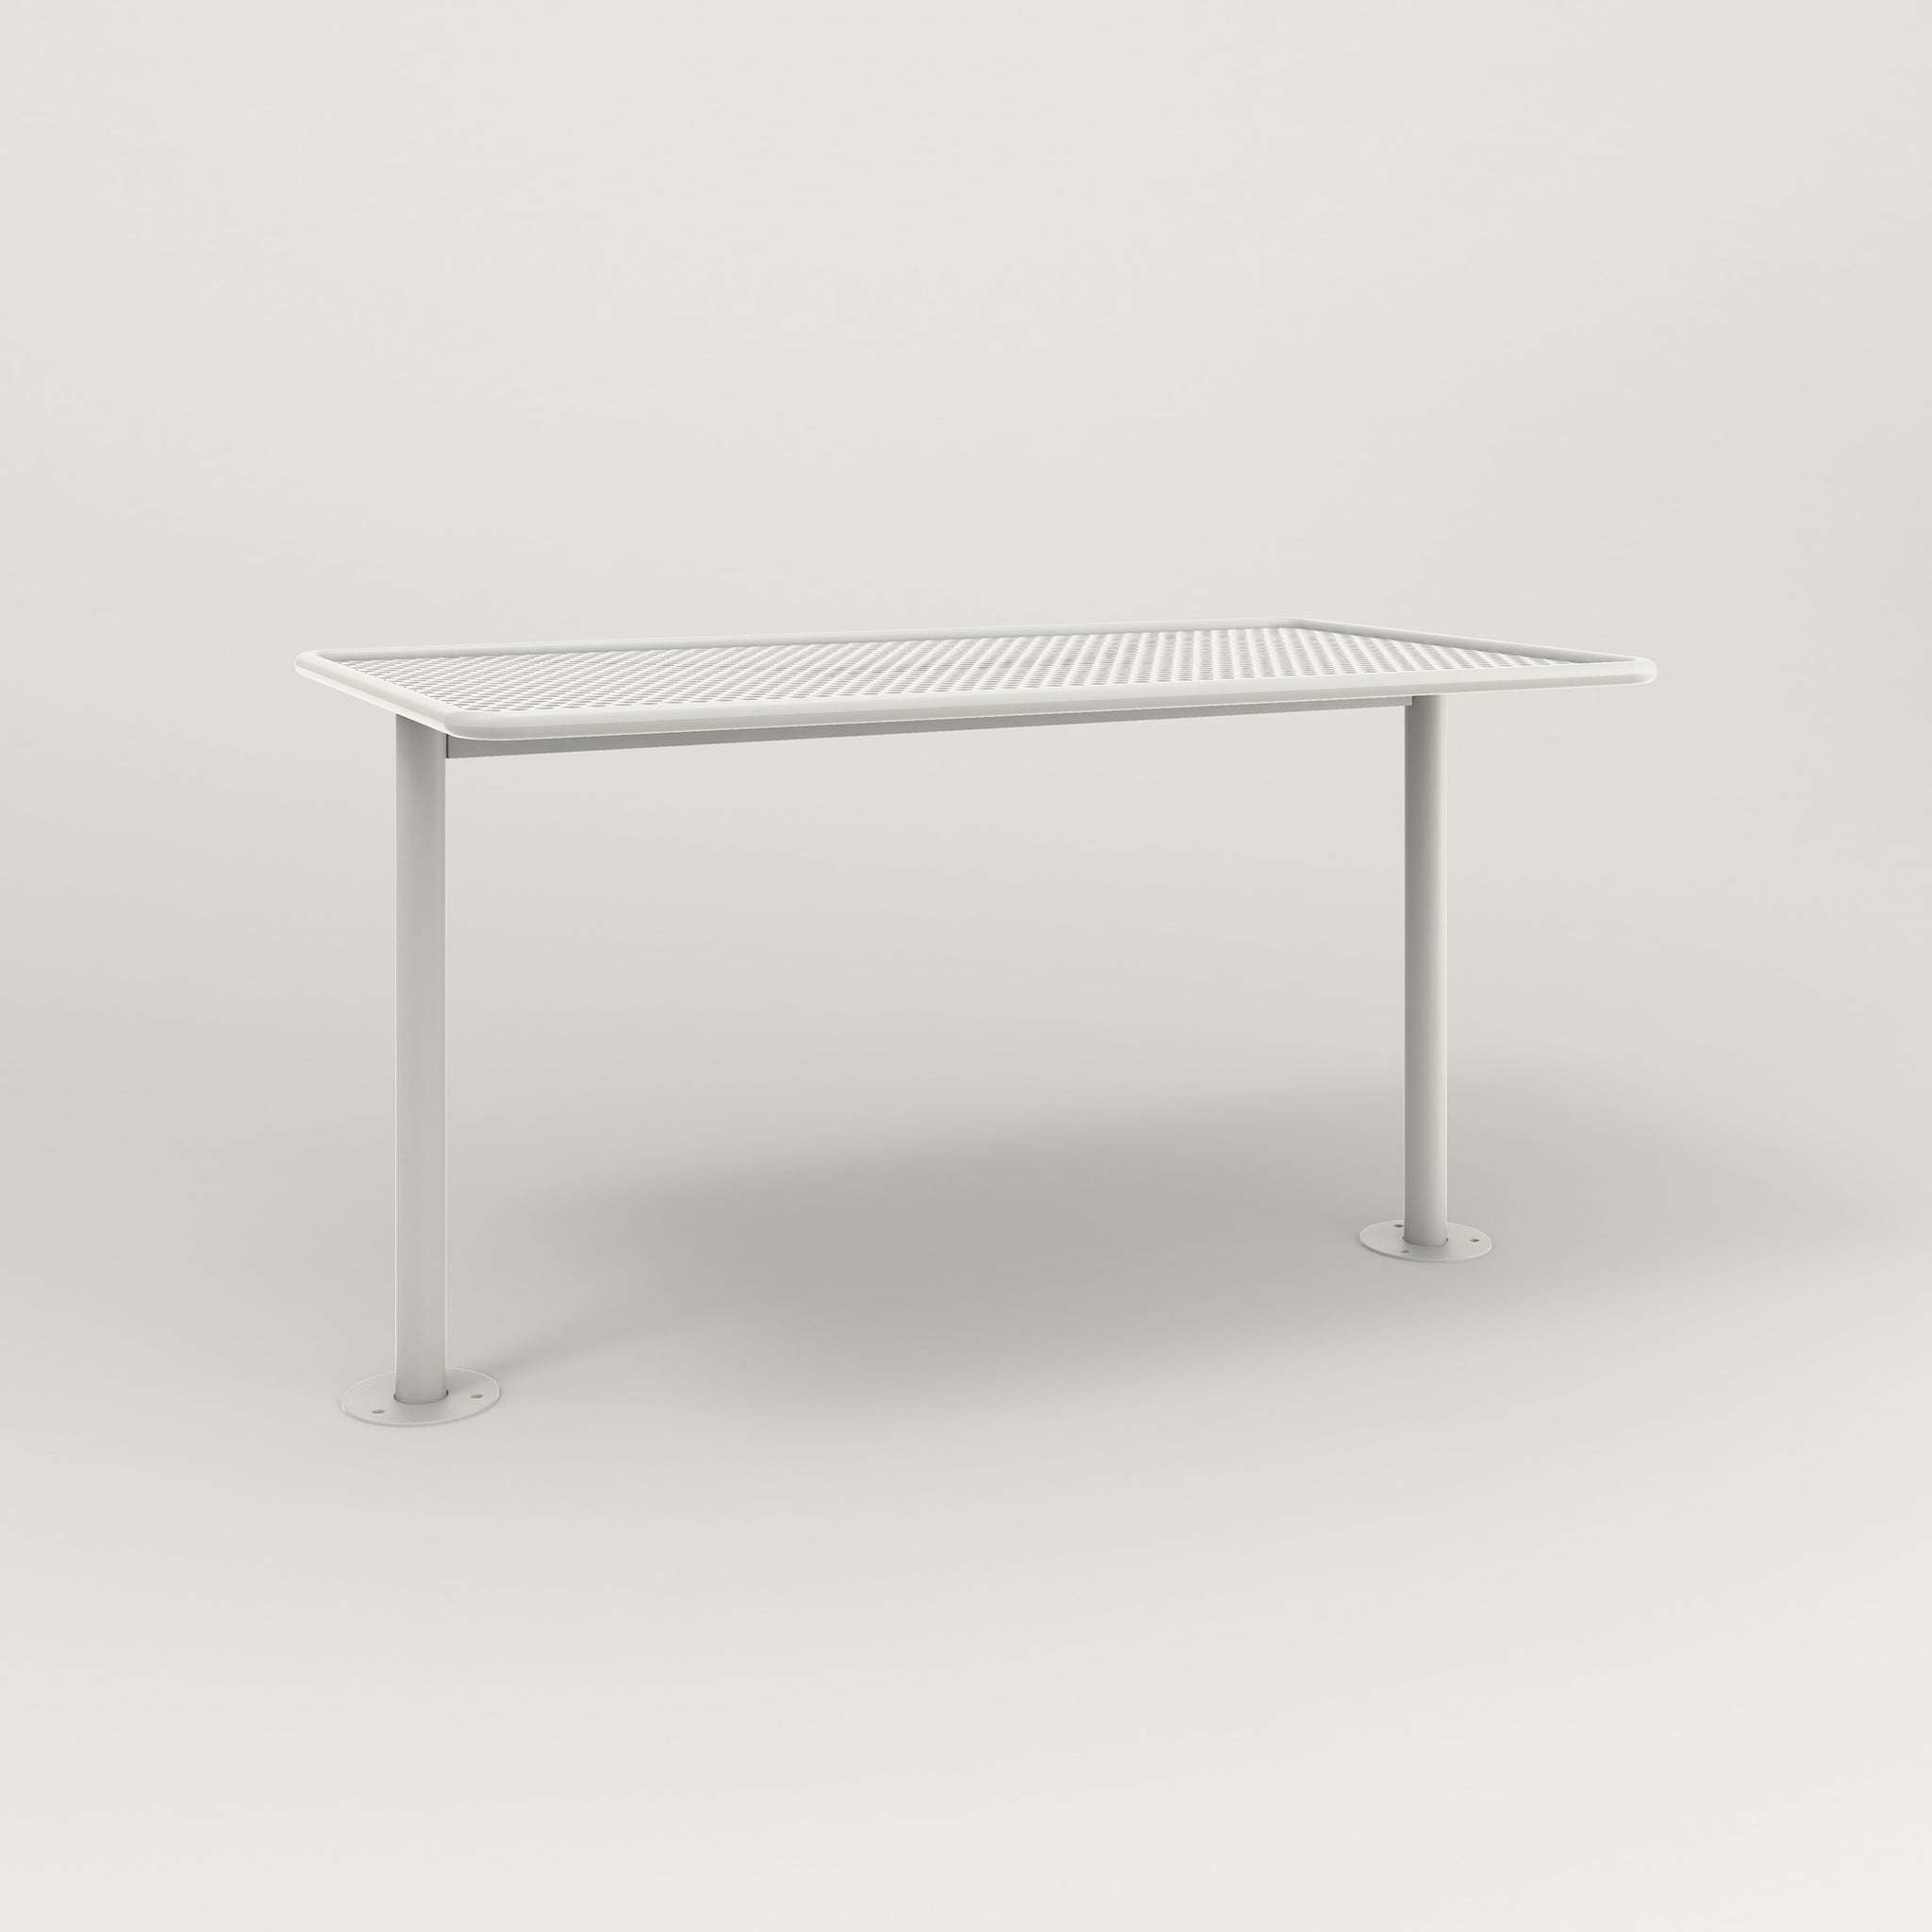 RAD Cafe Table, Rectangular Bolt Down Base T Leg in perforated steel and white powder coat.